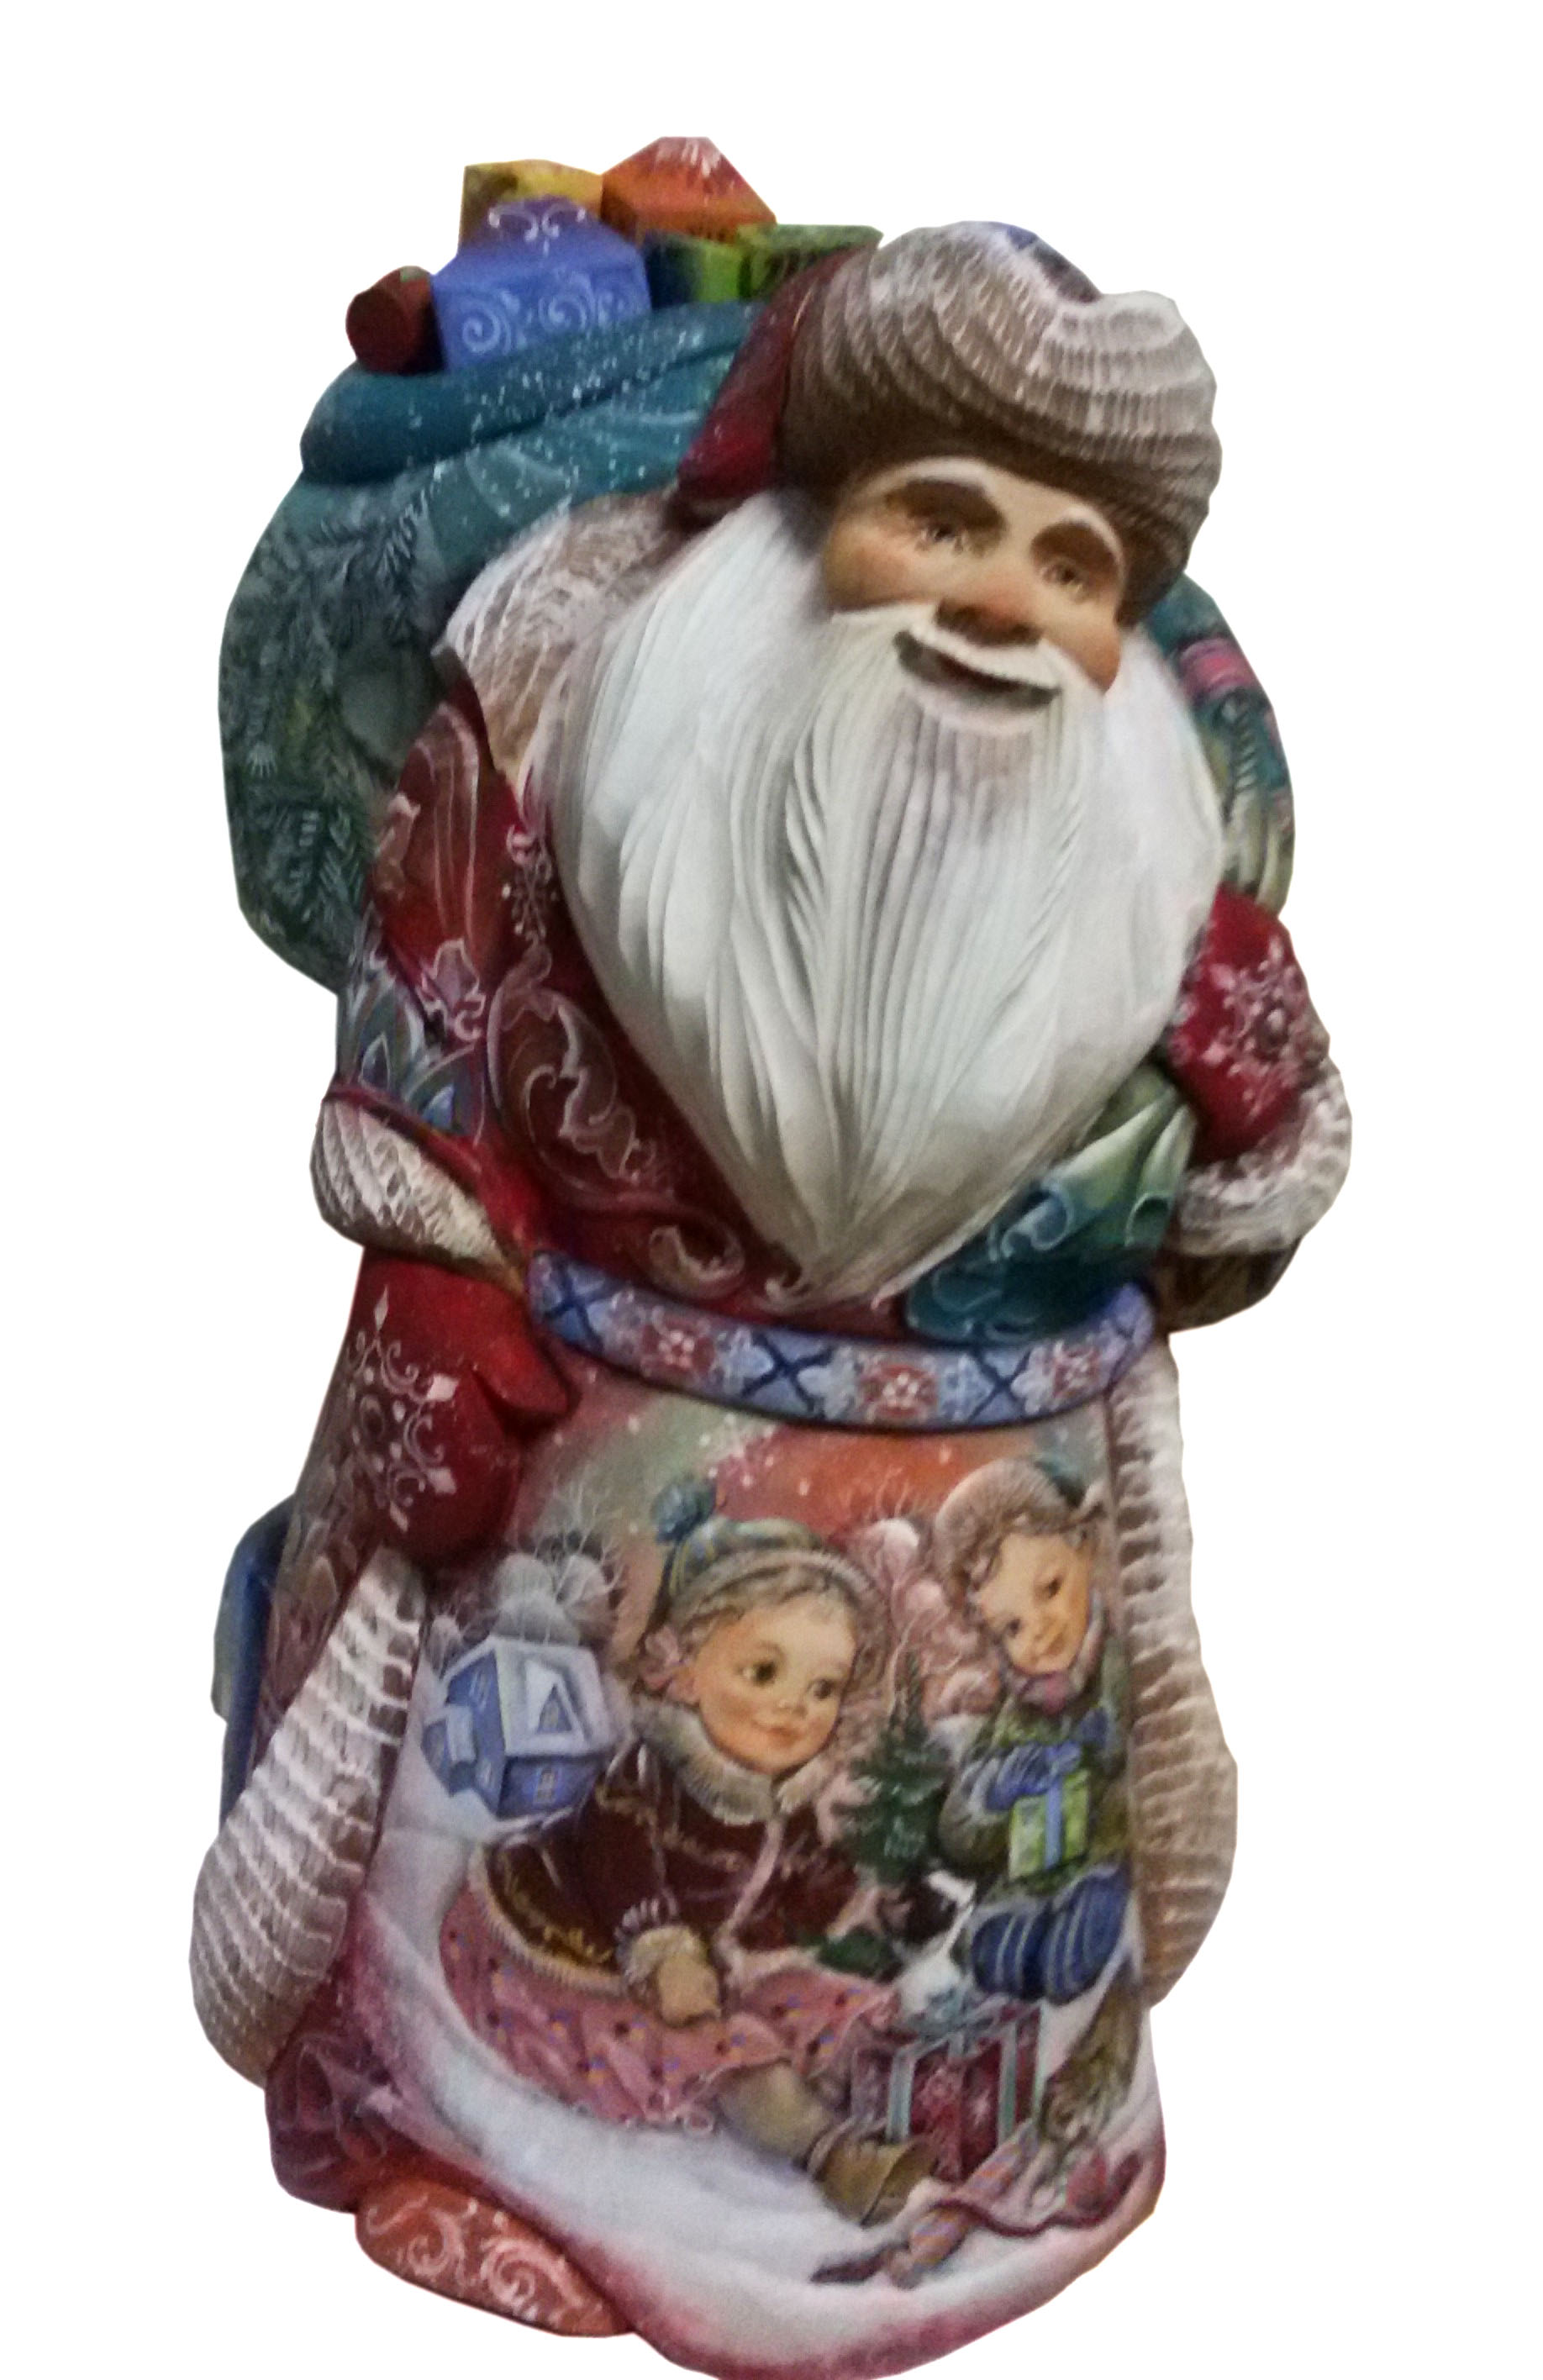 CK_ish100001 Traditionally hand carved of wood from linden tree and hand painted Santa Claus (33-35 cm)